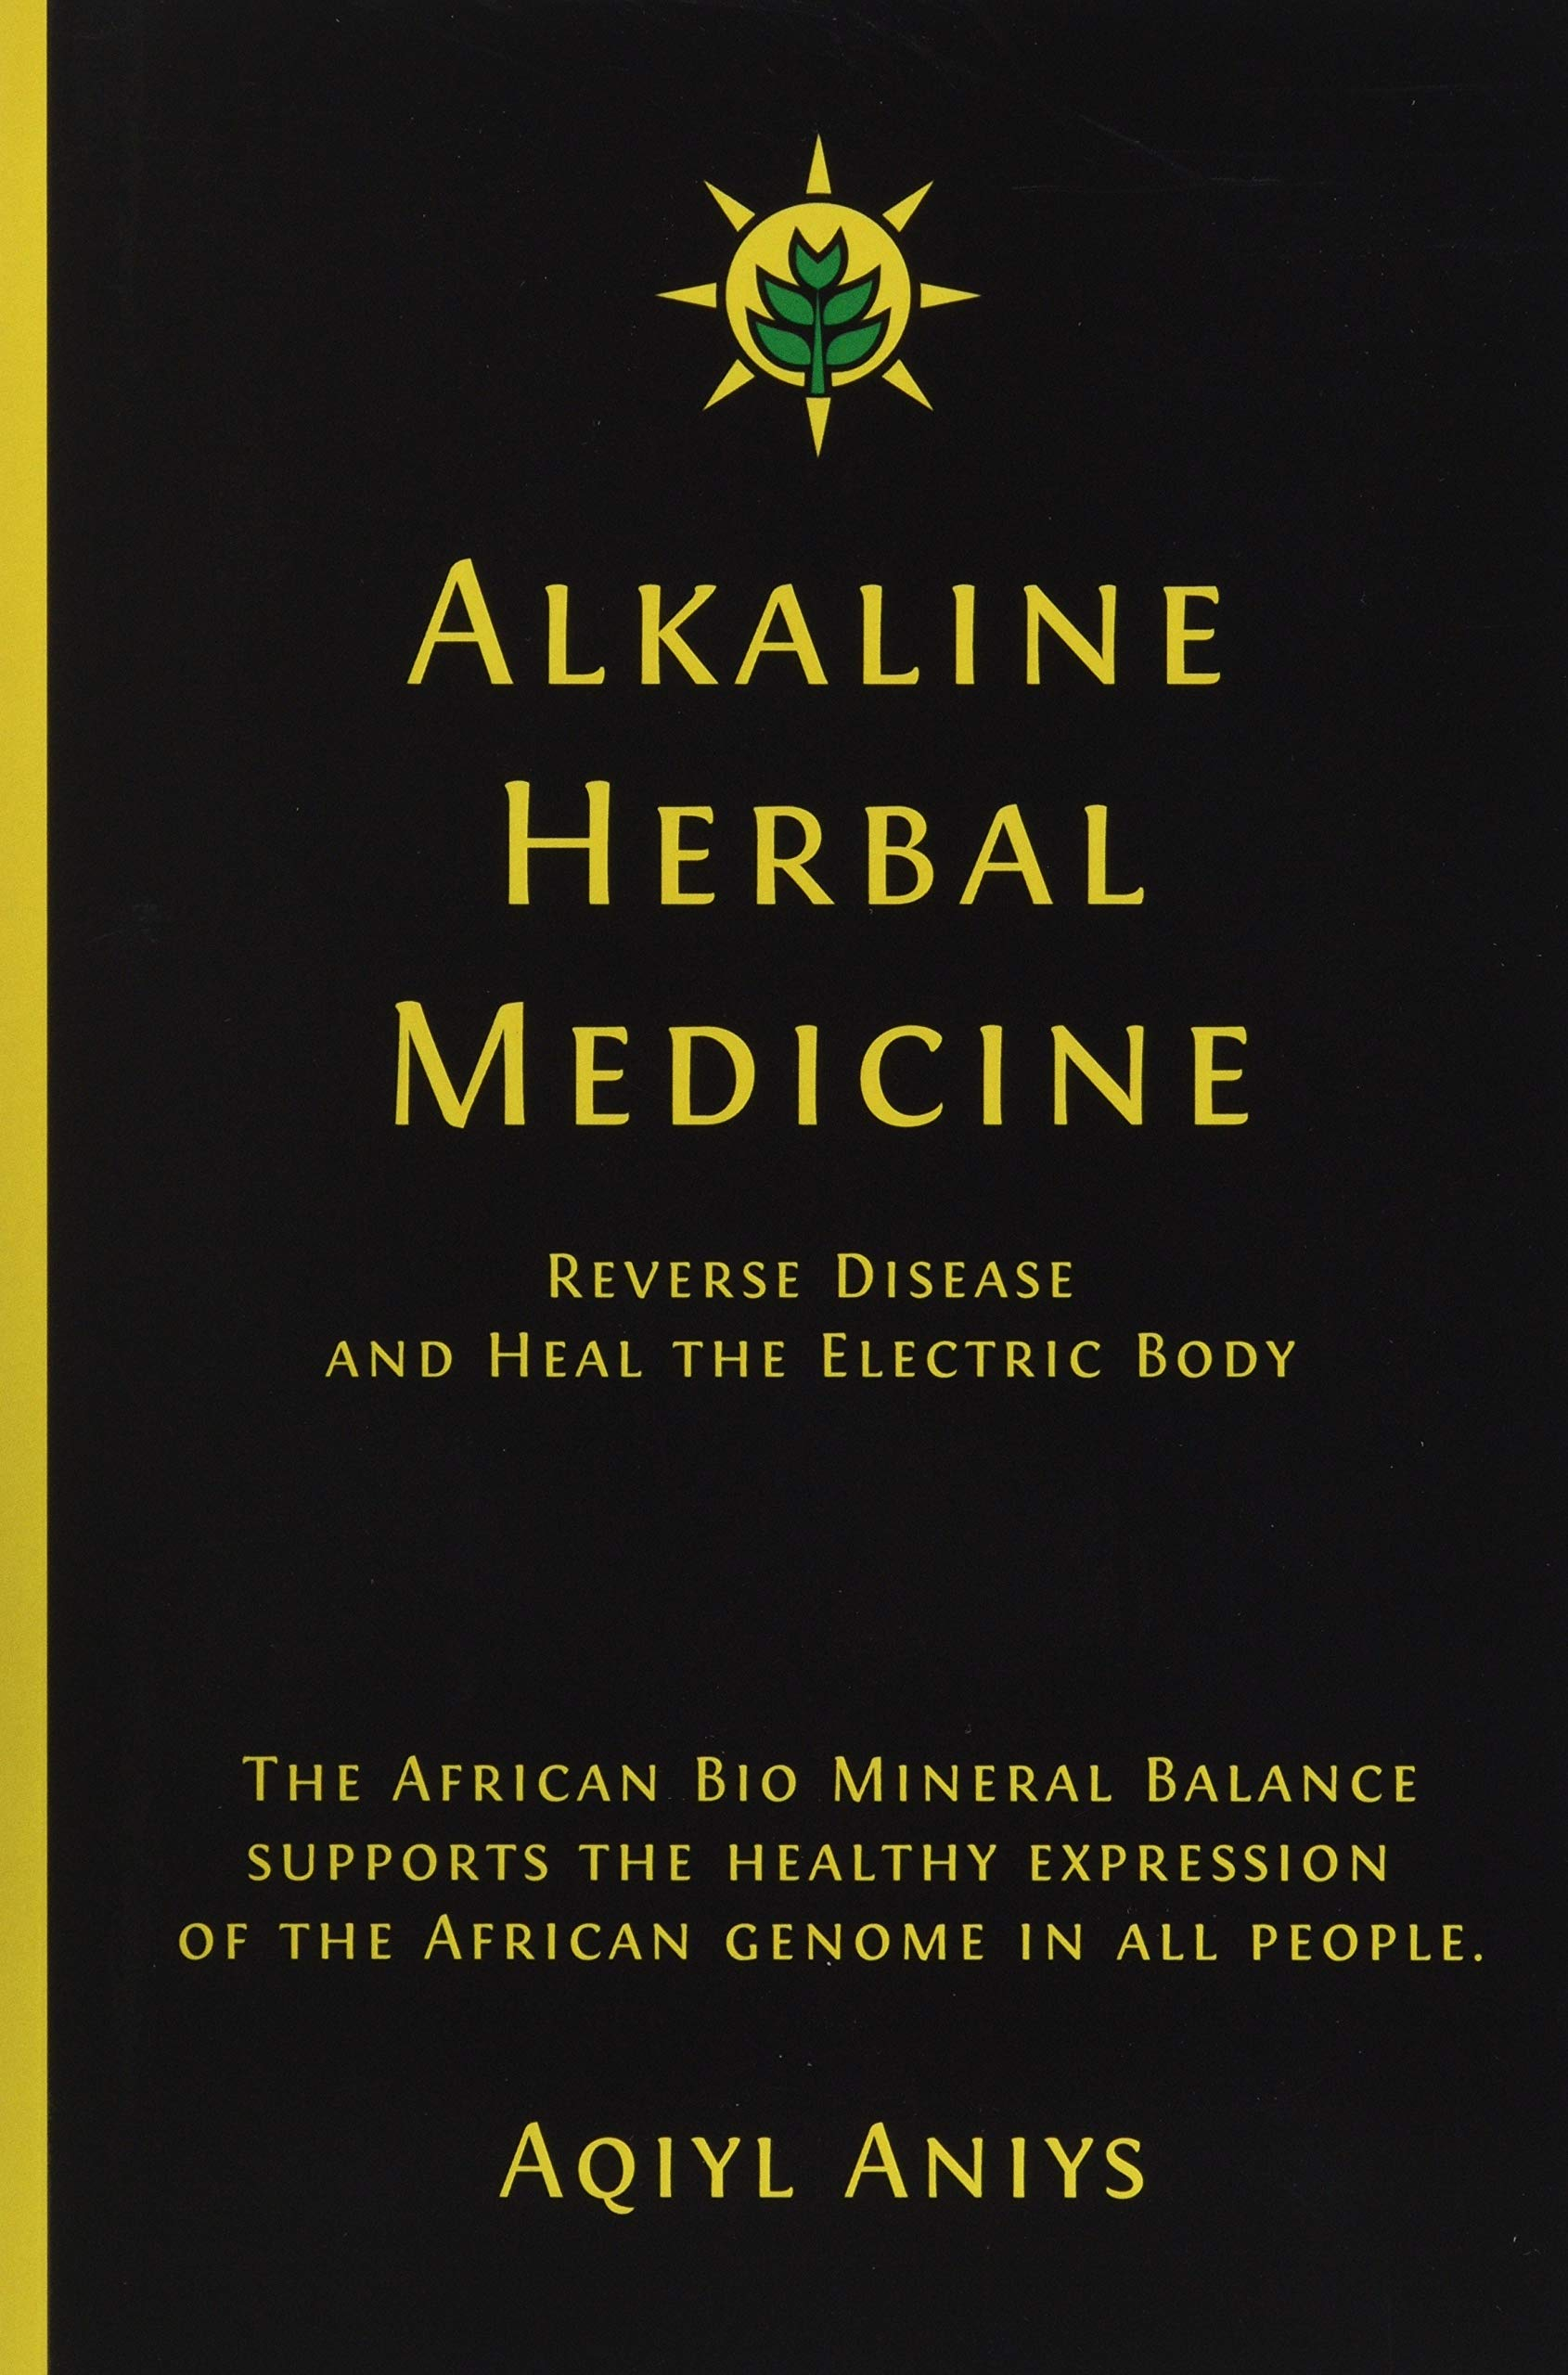 Alkaline Herbal Medicine: Reverse Disease and Heal the